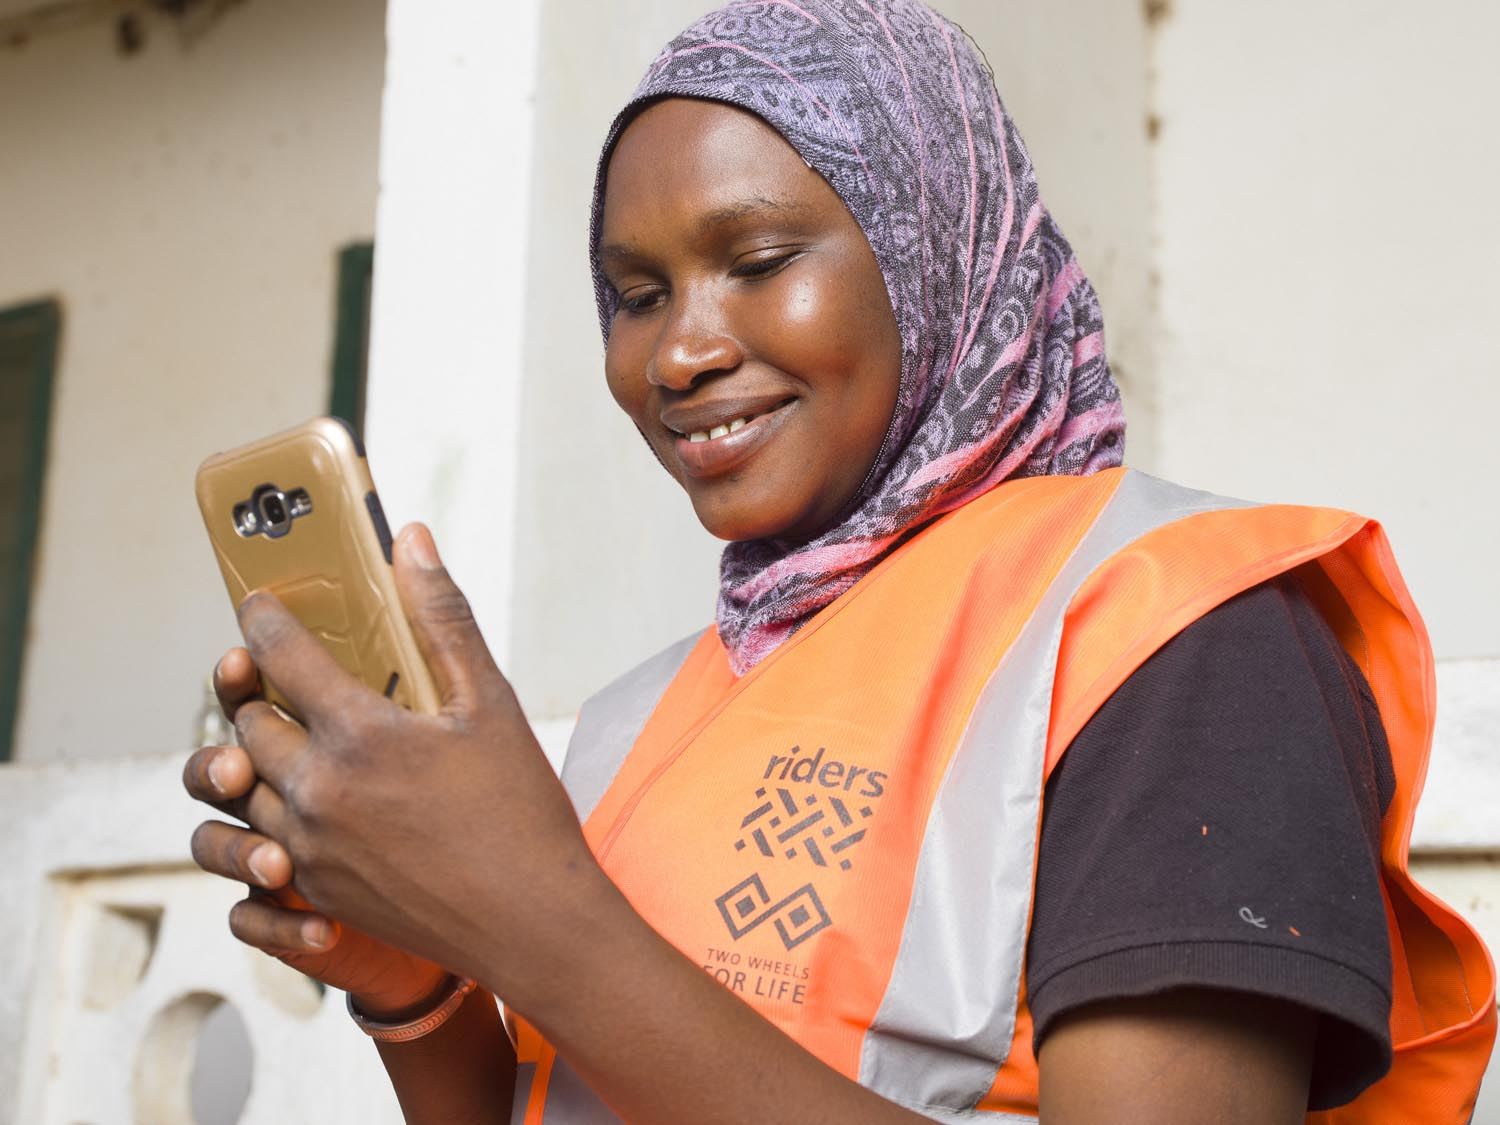 Health Worker using mobile handset, The Gambia